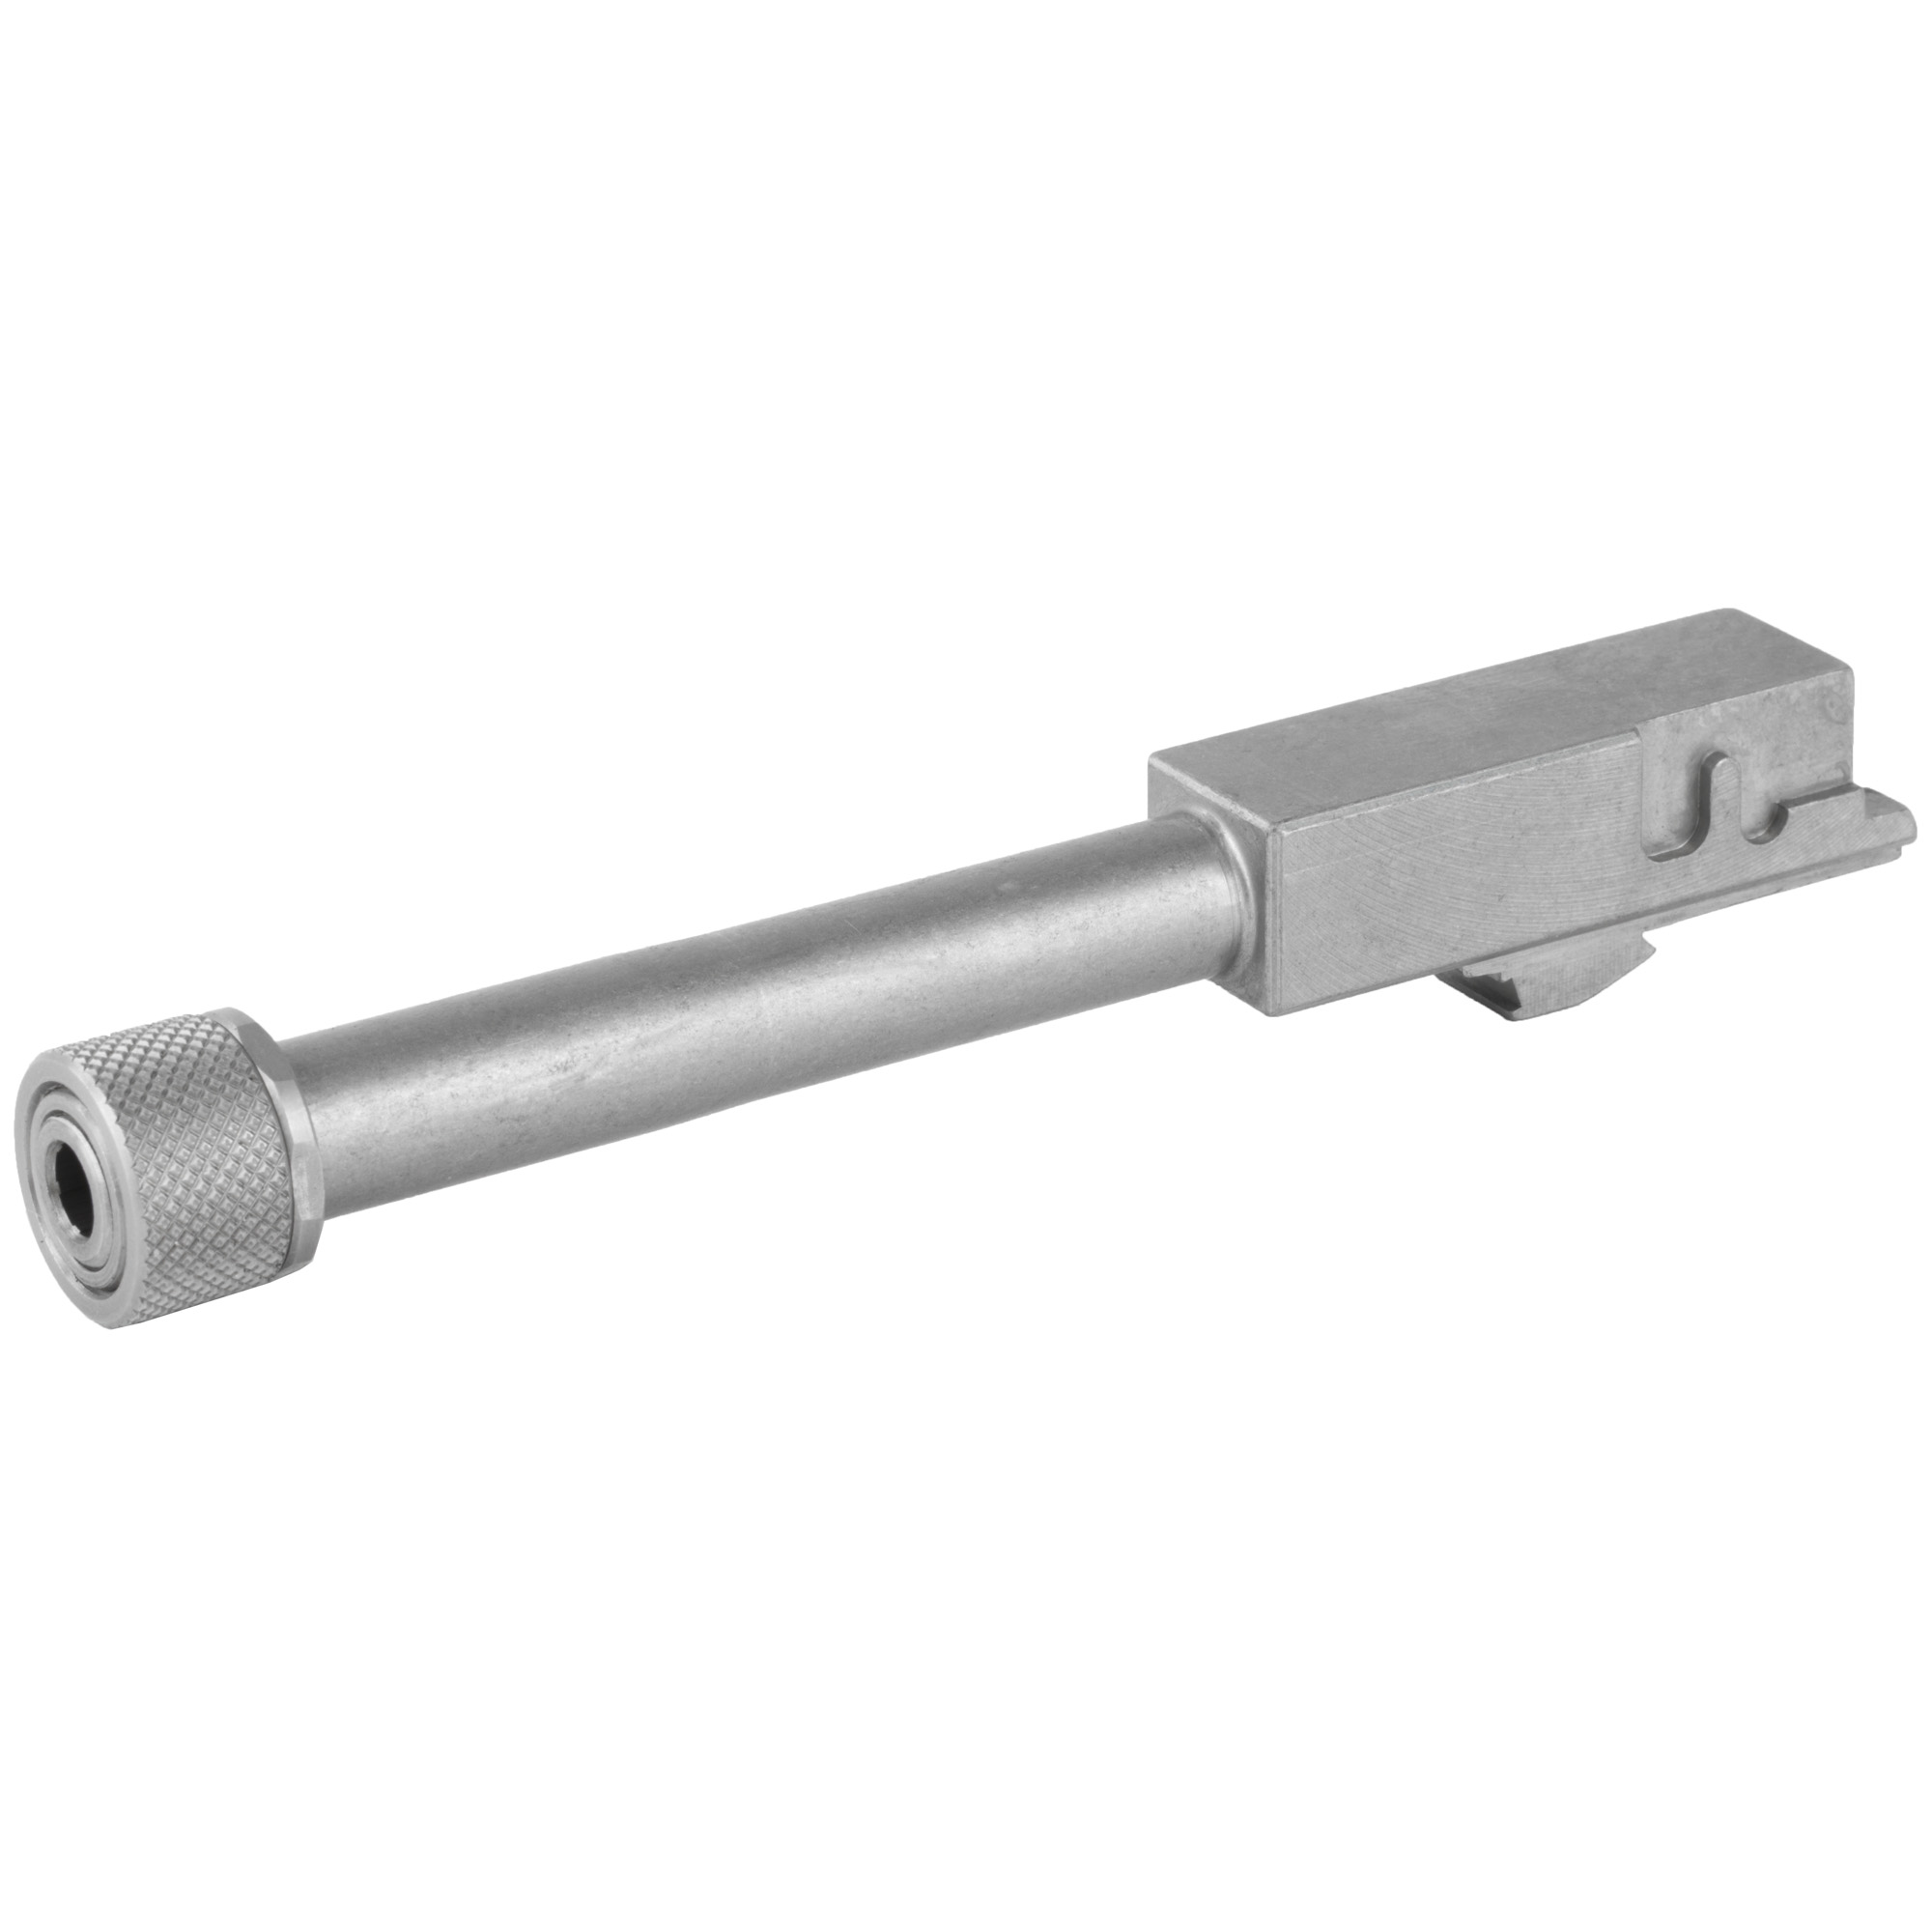 The Advantage Arms threaded barrel and adapter allows you to adapt your Advantage Arms barrel to work in conjunction with a suppressor or your favorite muzzle device.